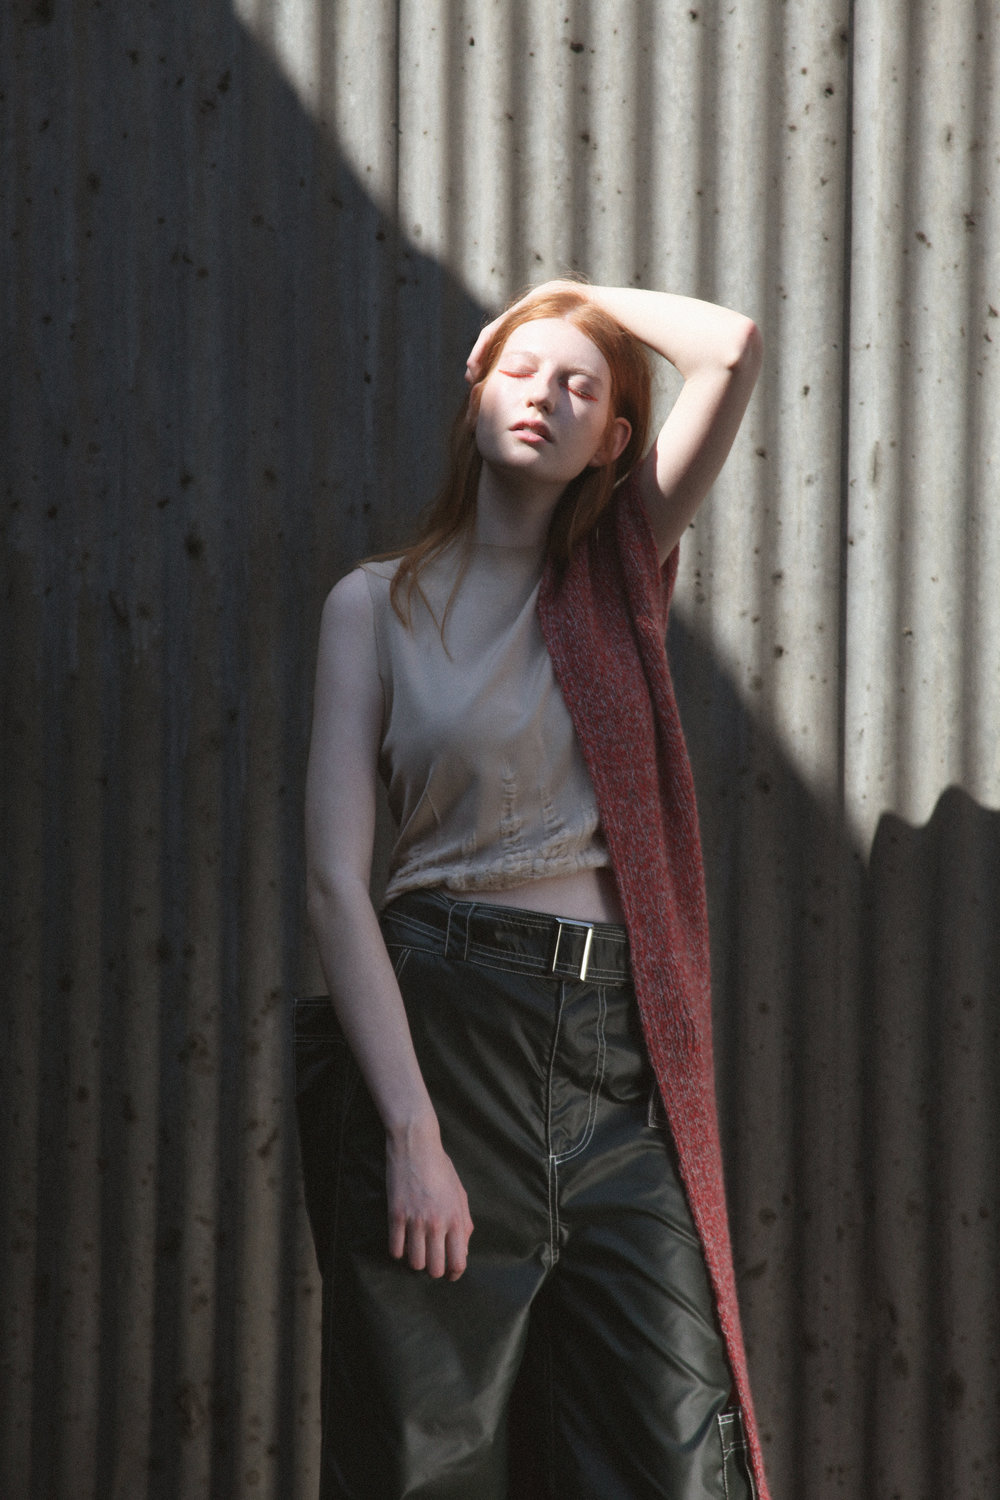 top TARA LEE, trousers BETH HALL, scarf GENEVIEVE SWEENEY